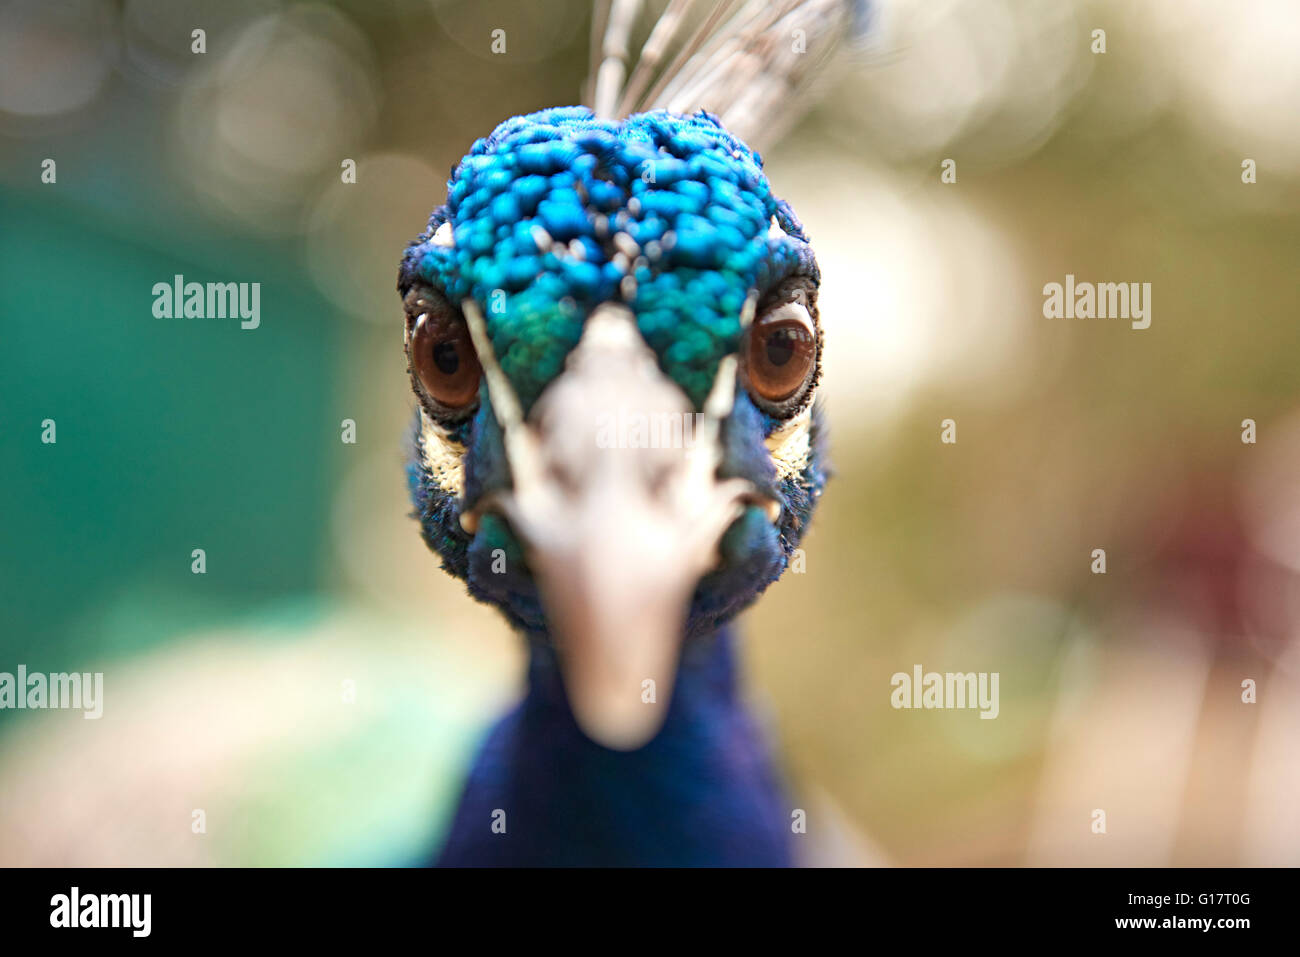 Close up portrait of staring blue peacock - Stock Image